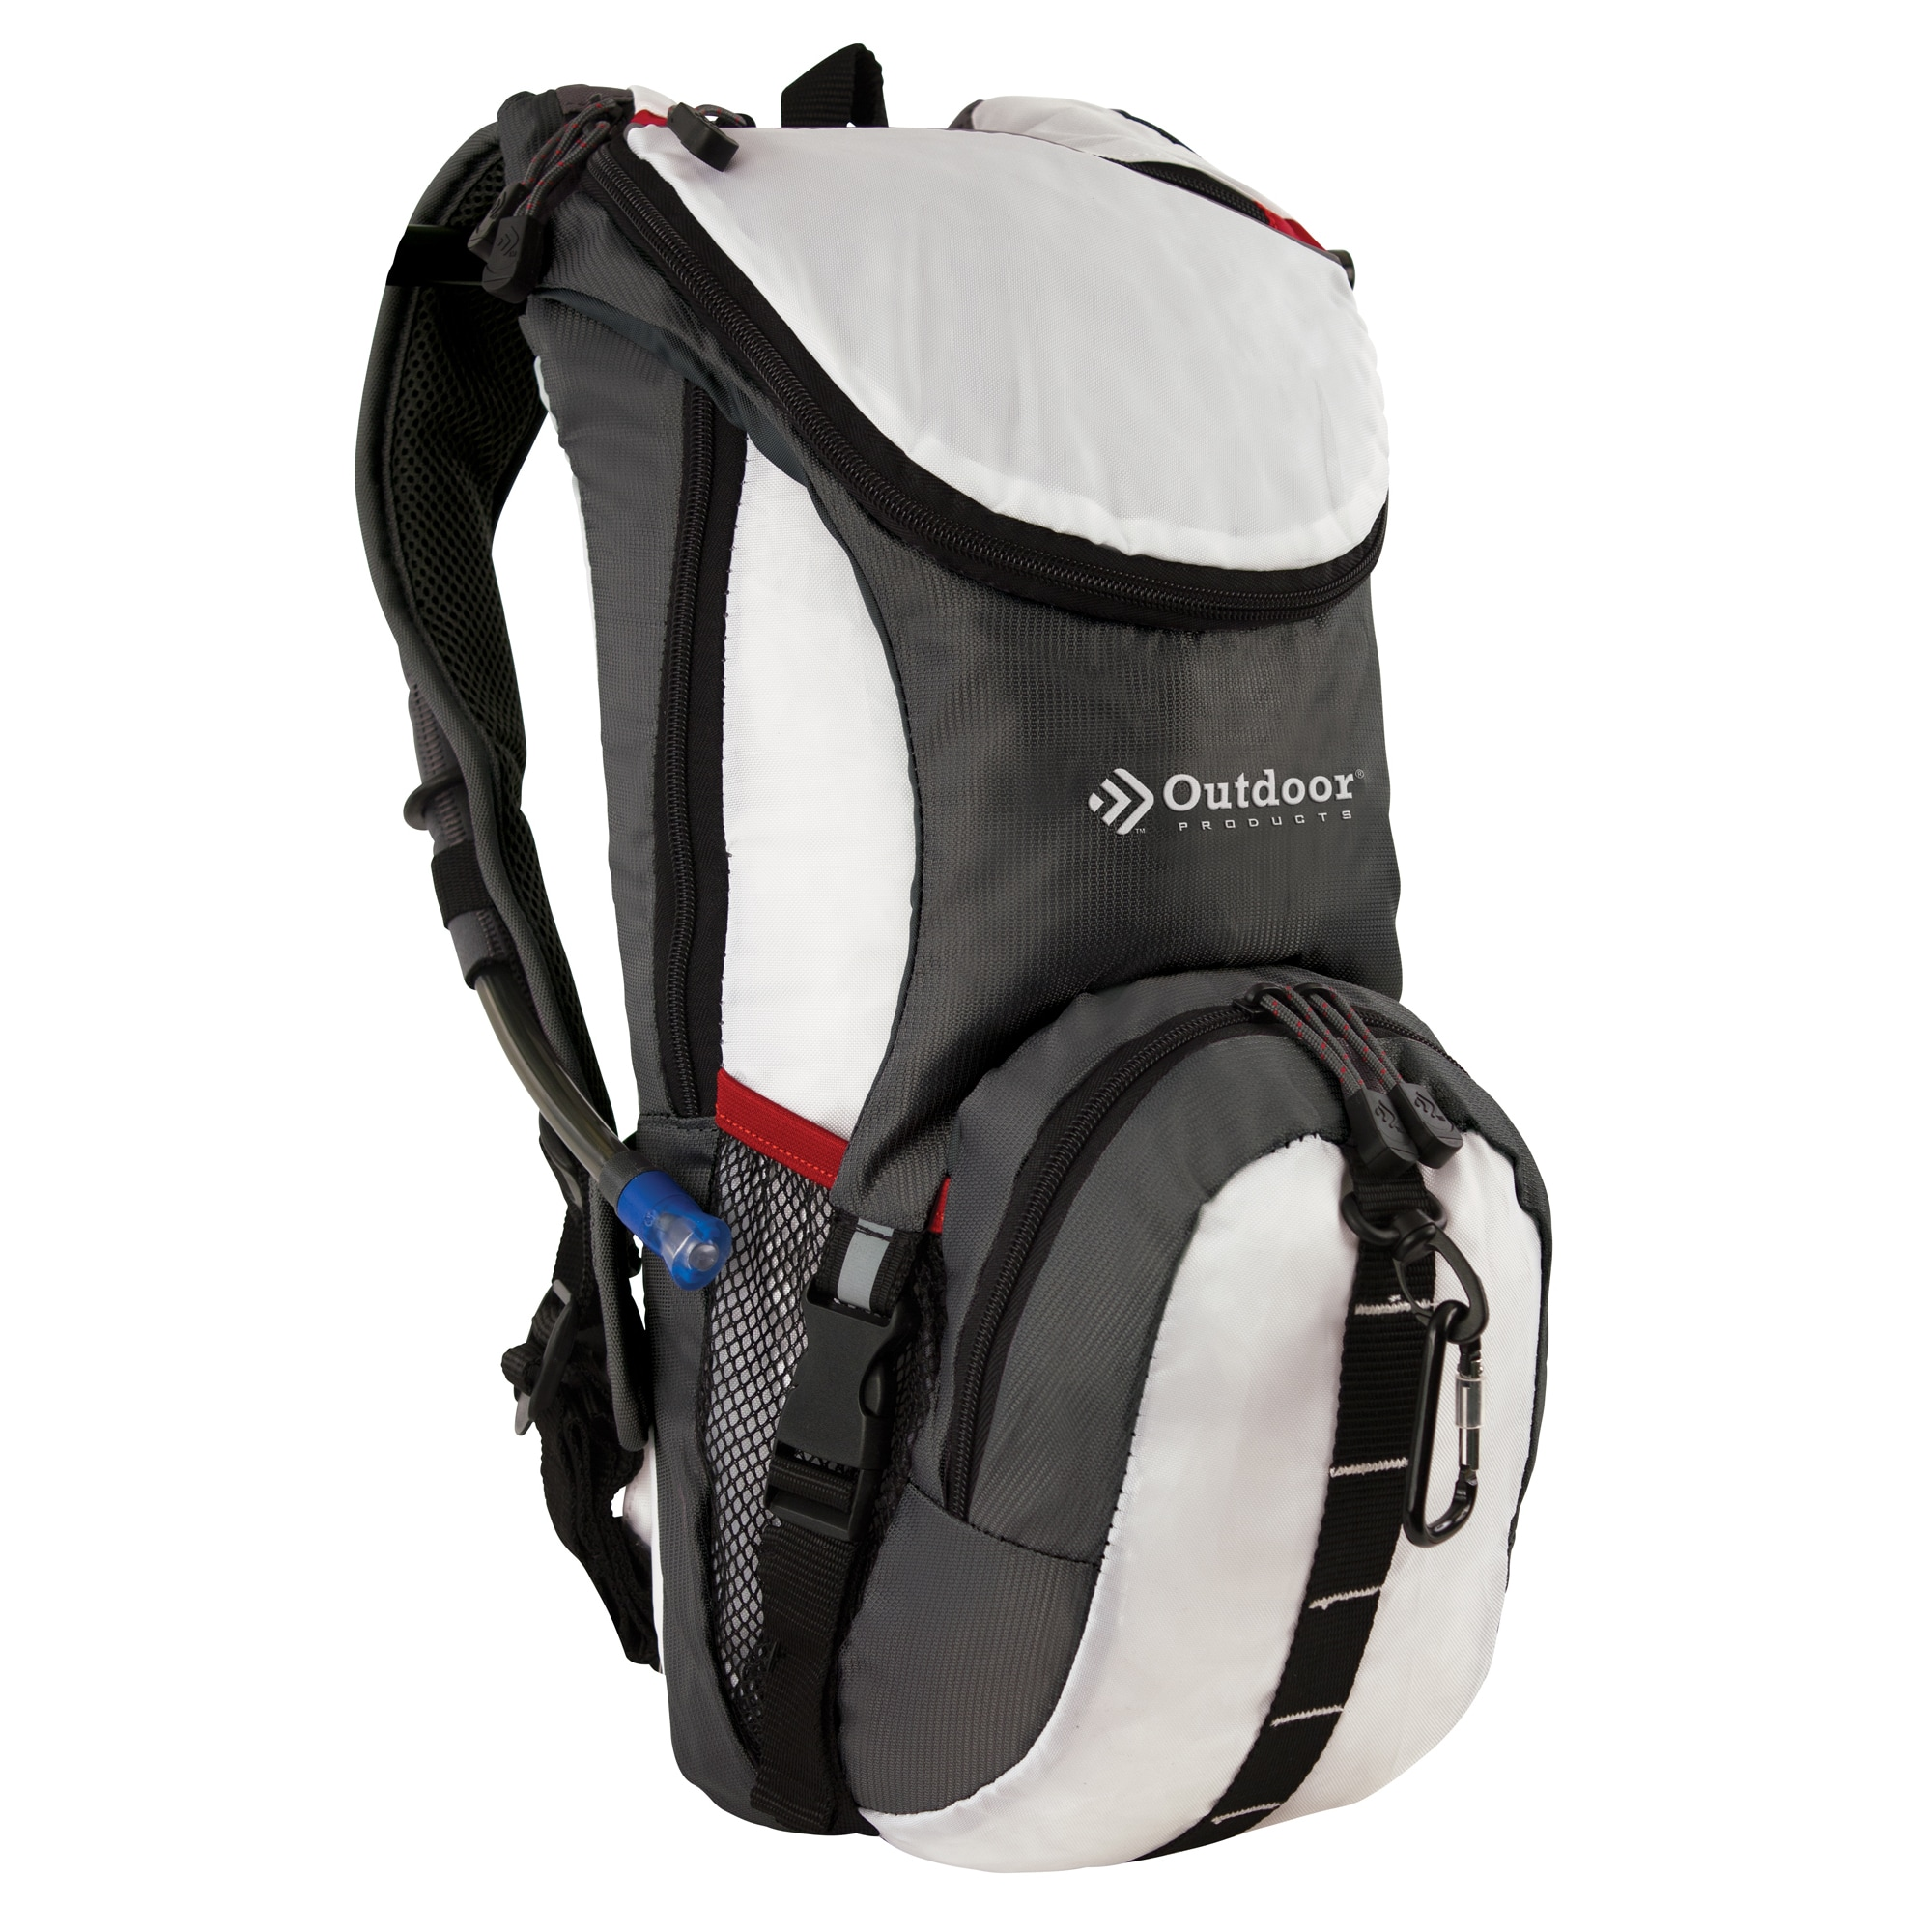 Outdoor Products Ripcord Hydration Pack (Color), White